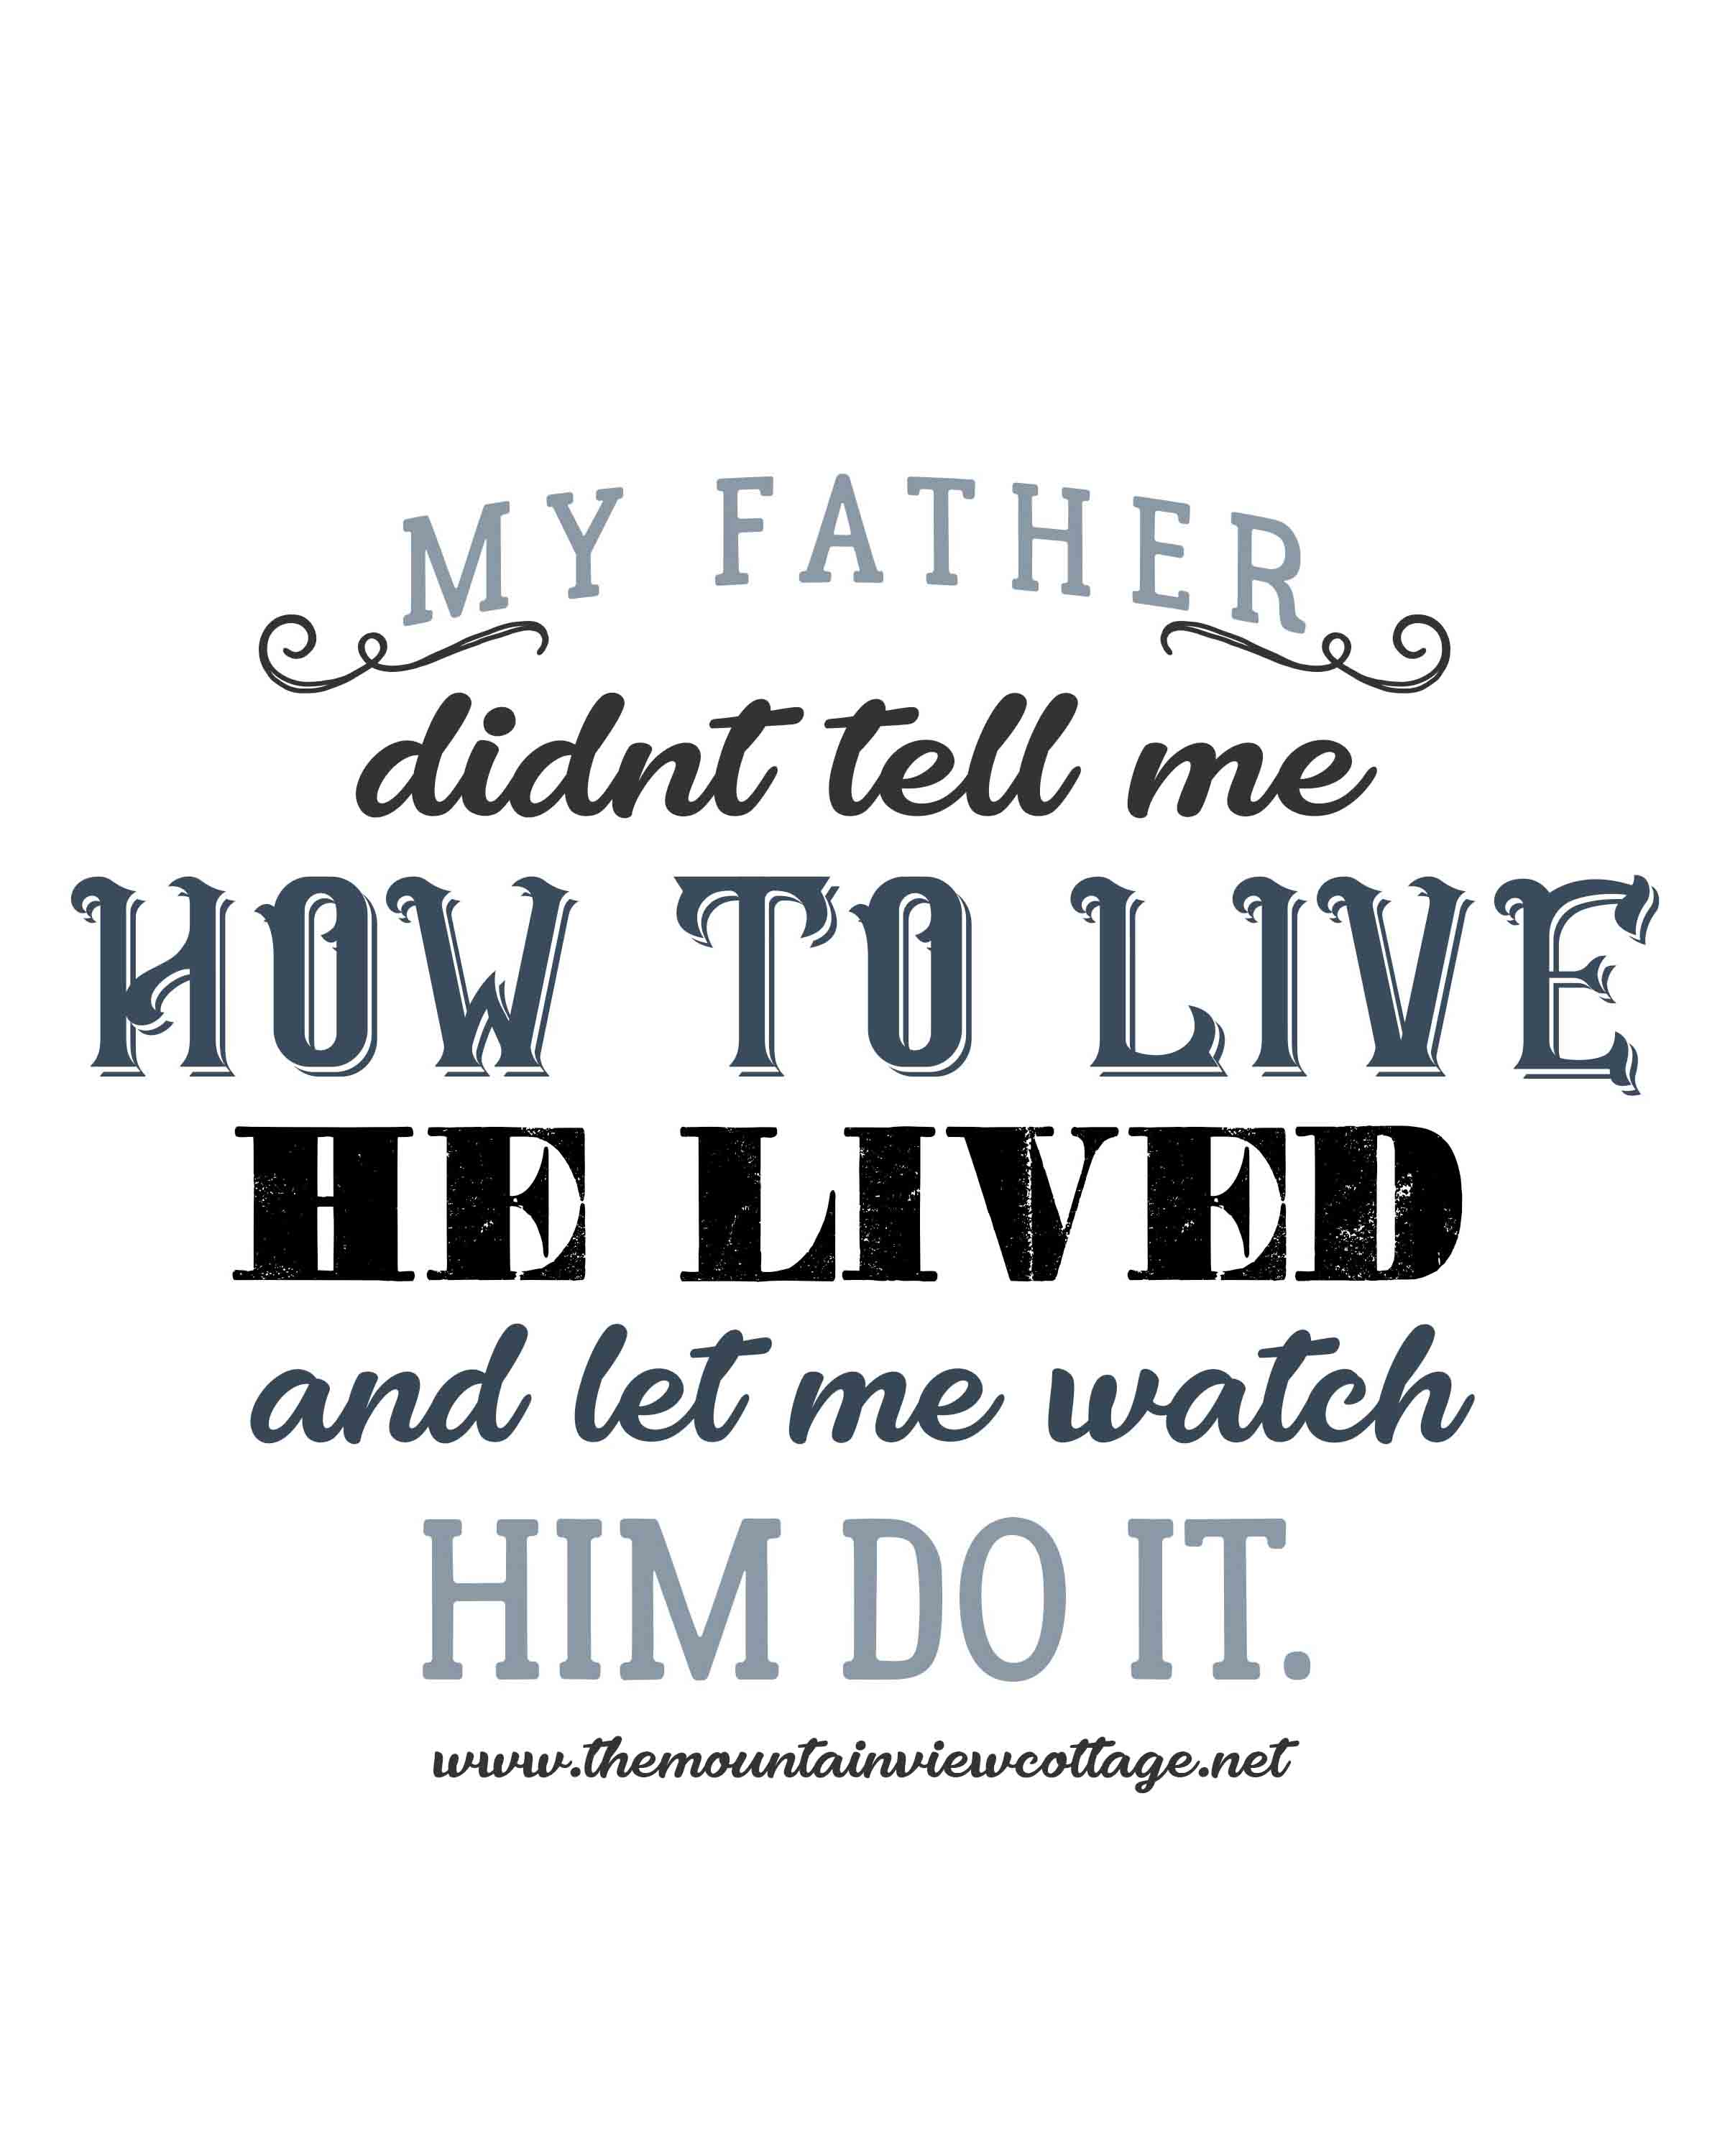 Dad quotes-Dad inspirational quotes-my father didnt tell me how to live he lived and let me watch him do it